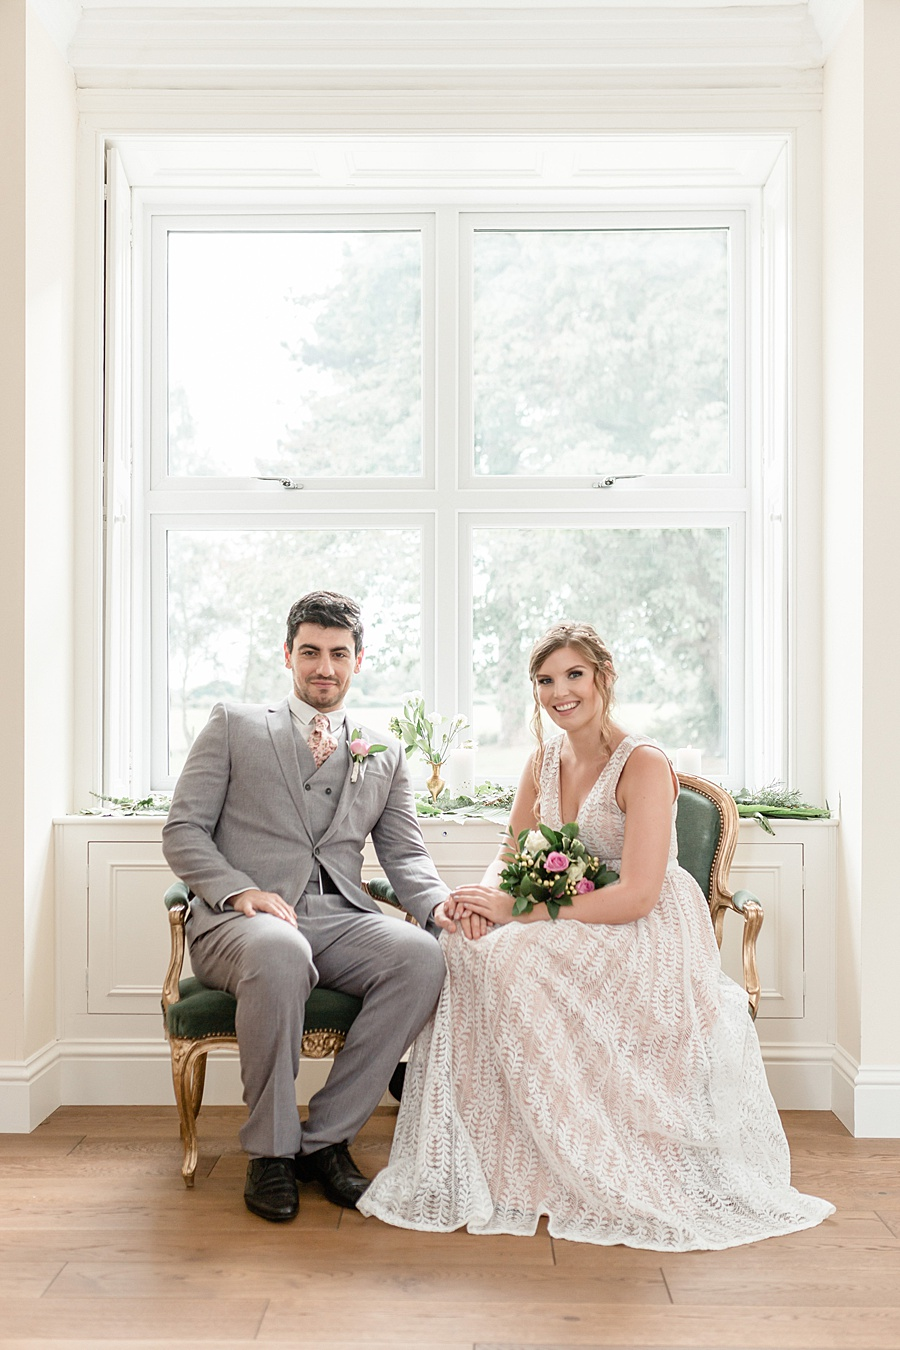 Neutral organic and minimal wedding style ideas from Kingsdown Rectory. Styling Your Wedding Your Way Images Kate Hennessey Photography (34)